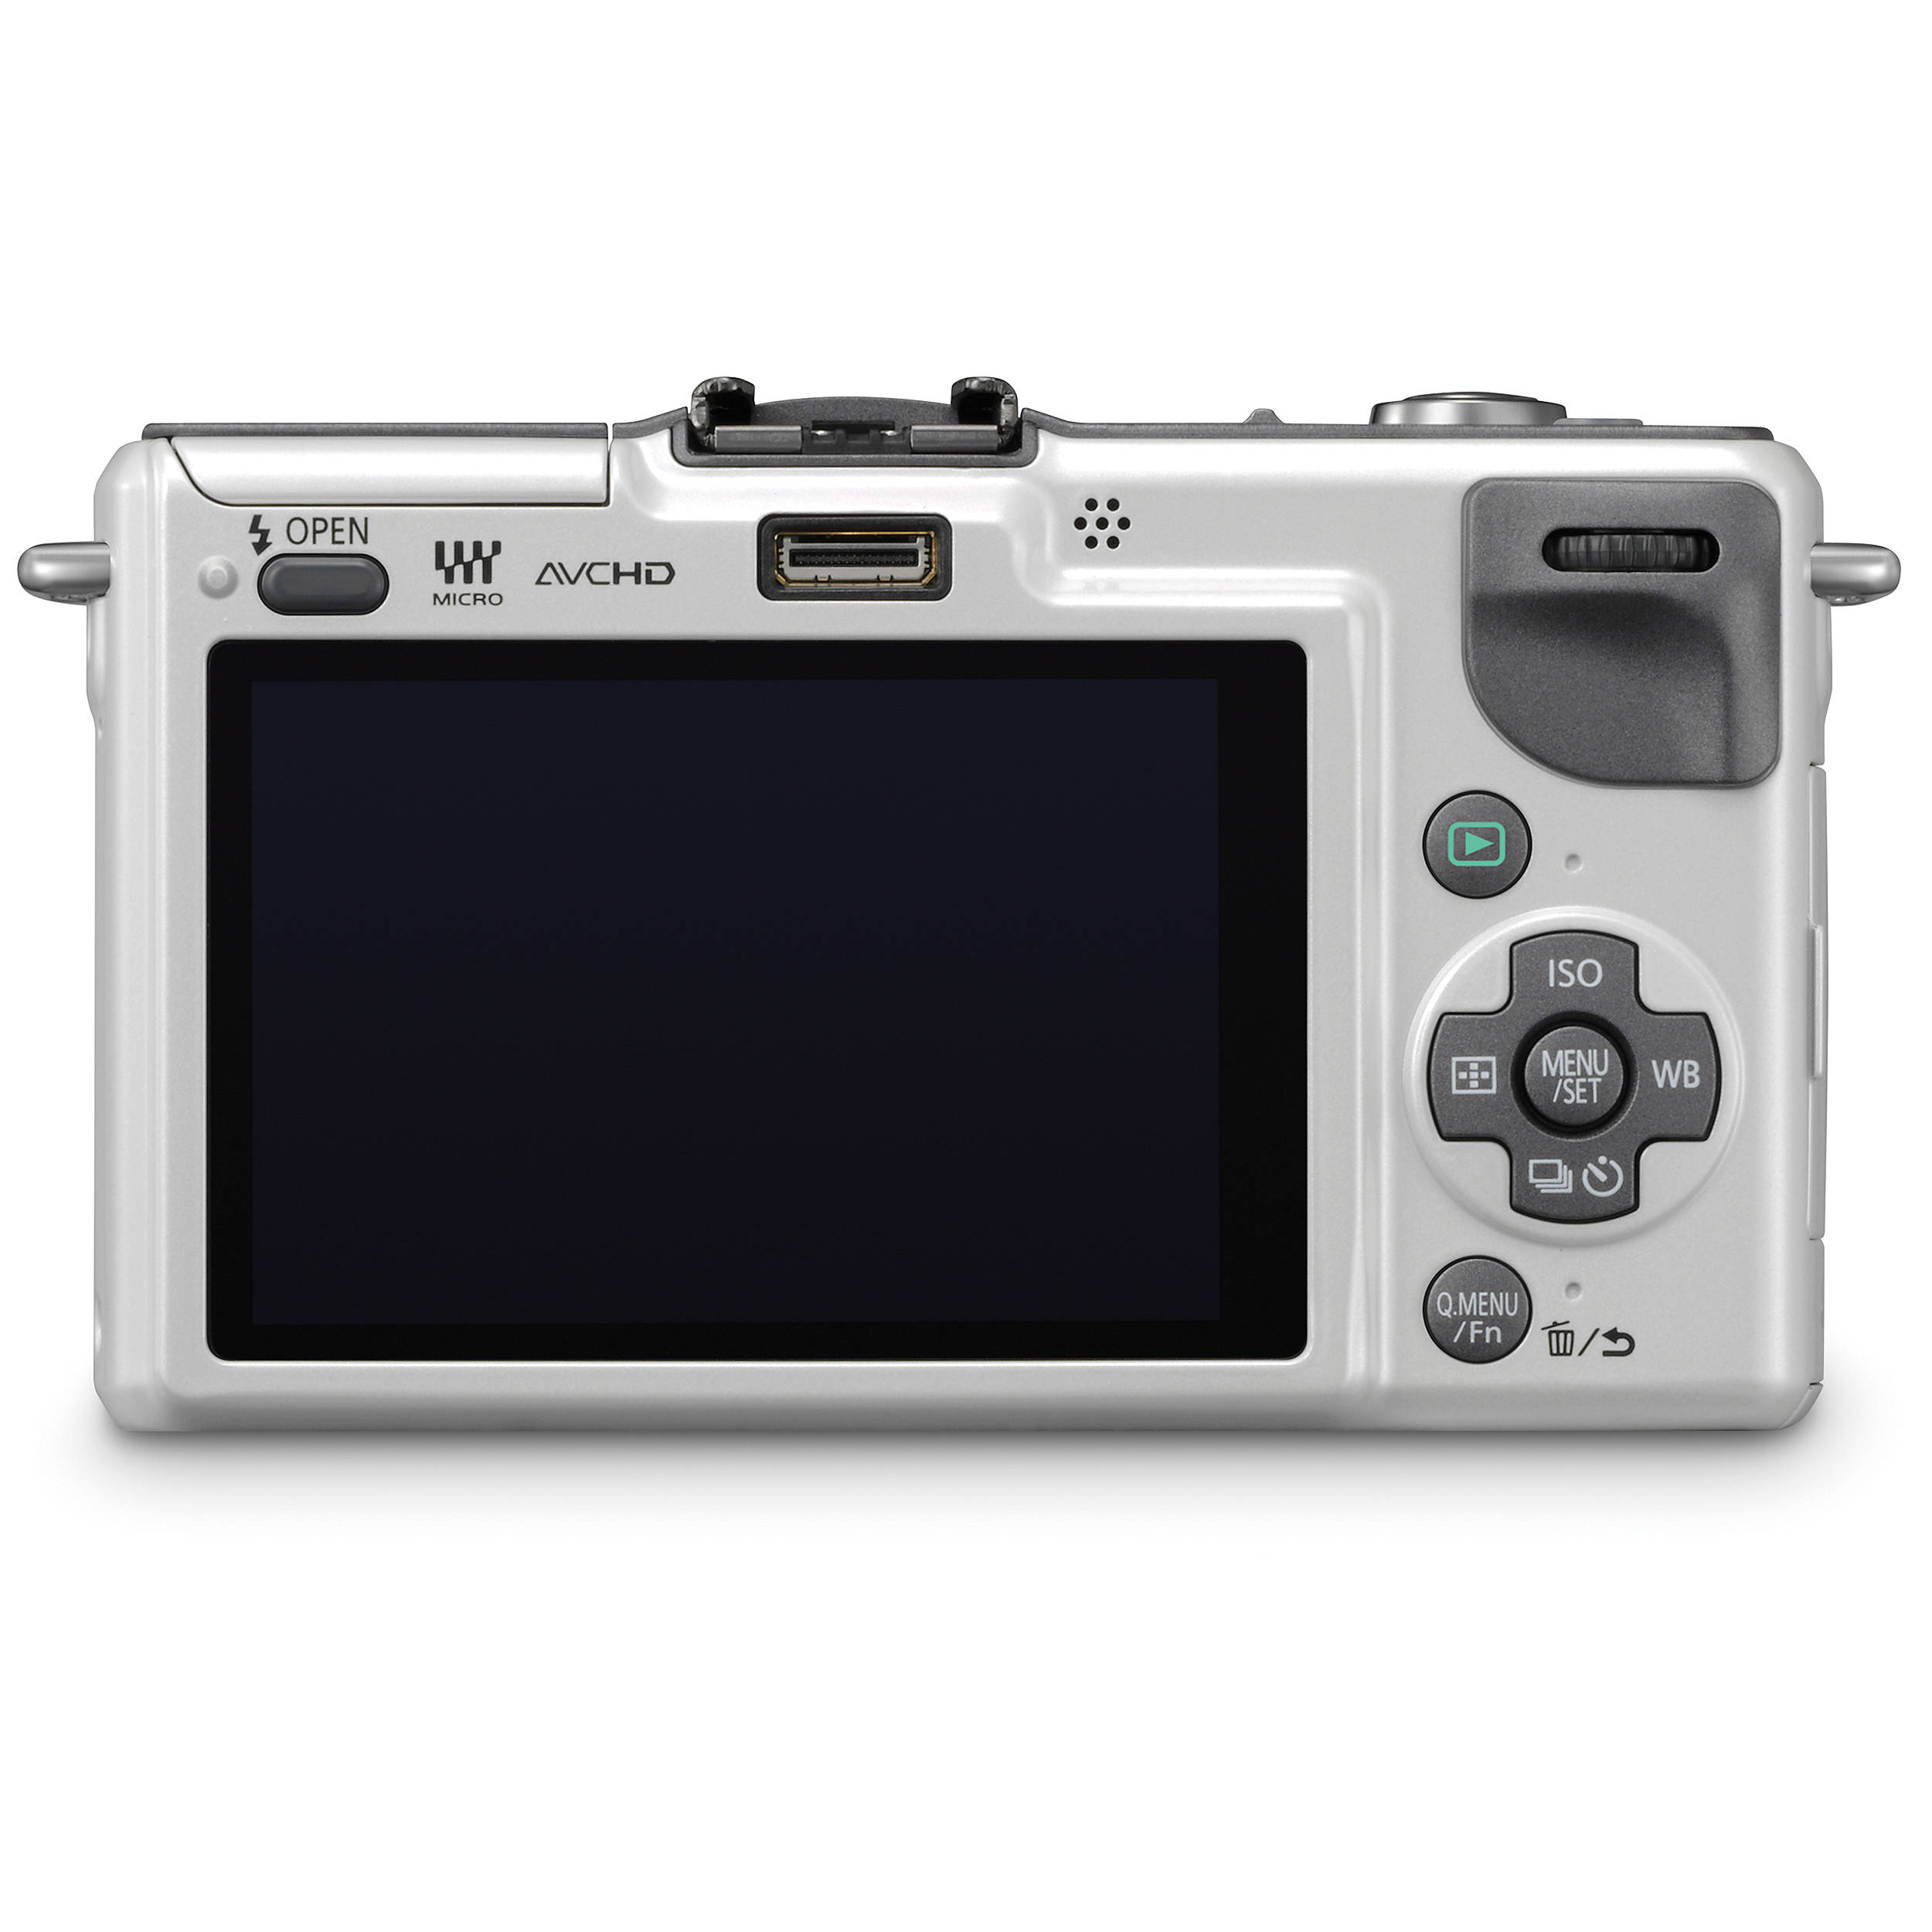 For Panasonic DMC-G3K Series DMC-GF2C Series Cameras Comes with Hot Deals 4 Less All In One Swivel USB card reader and. Perfect for high-speed continuous shooting and filming in HD 64GB Class 10 SDXC High Speed Memory Card 50MB//Sec